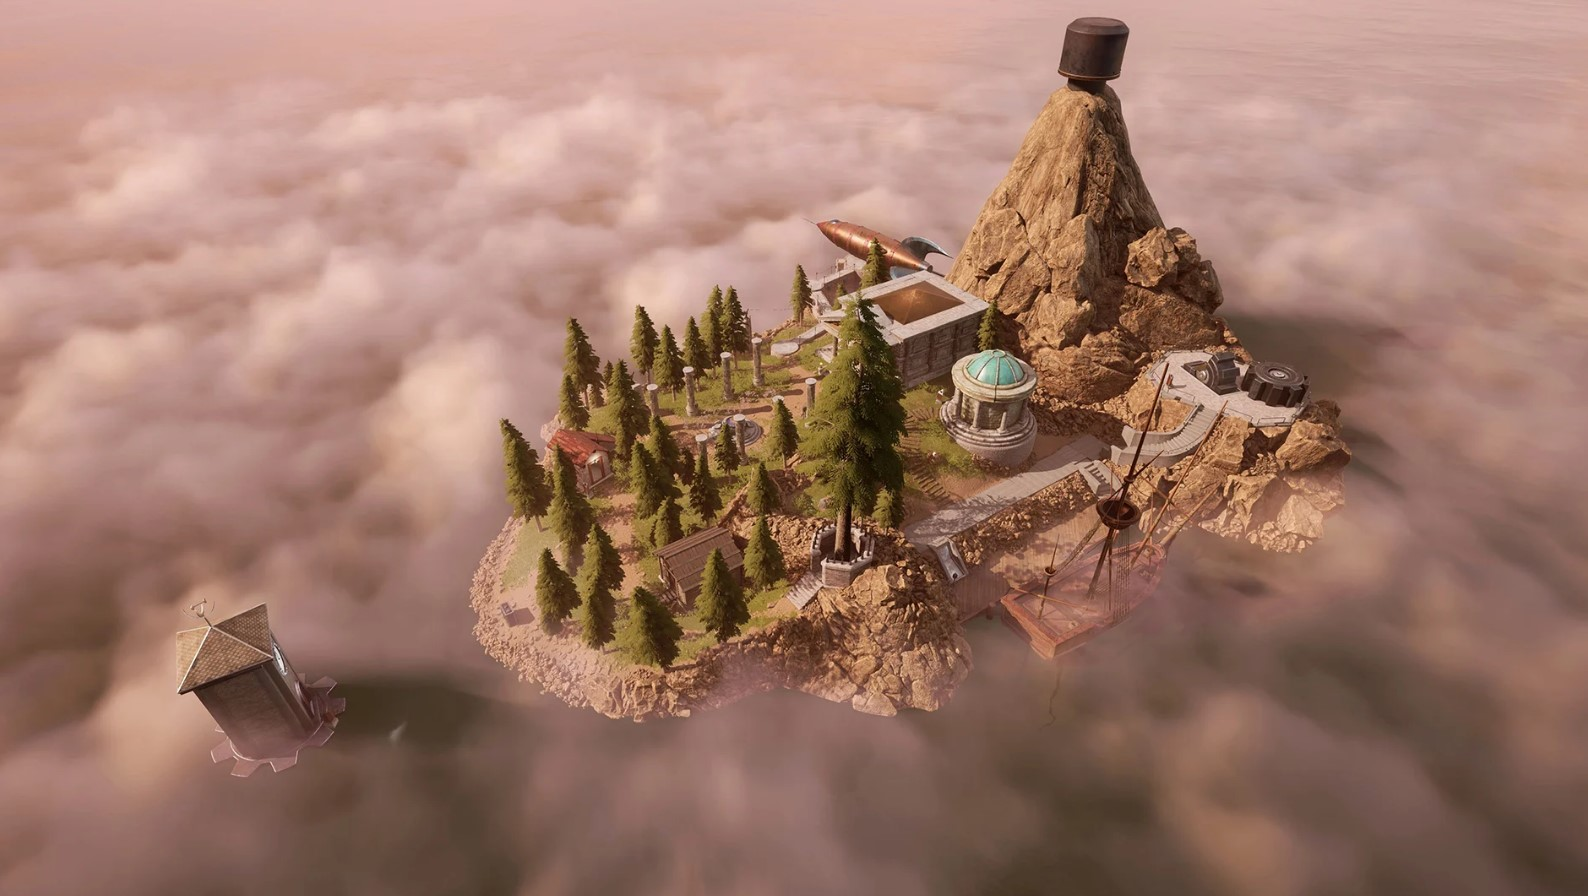 Cyan Inc.'s Myst will soon be reimagined in virtual reality